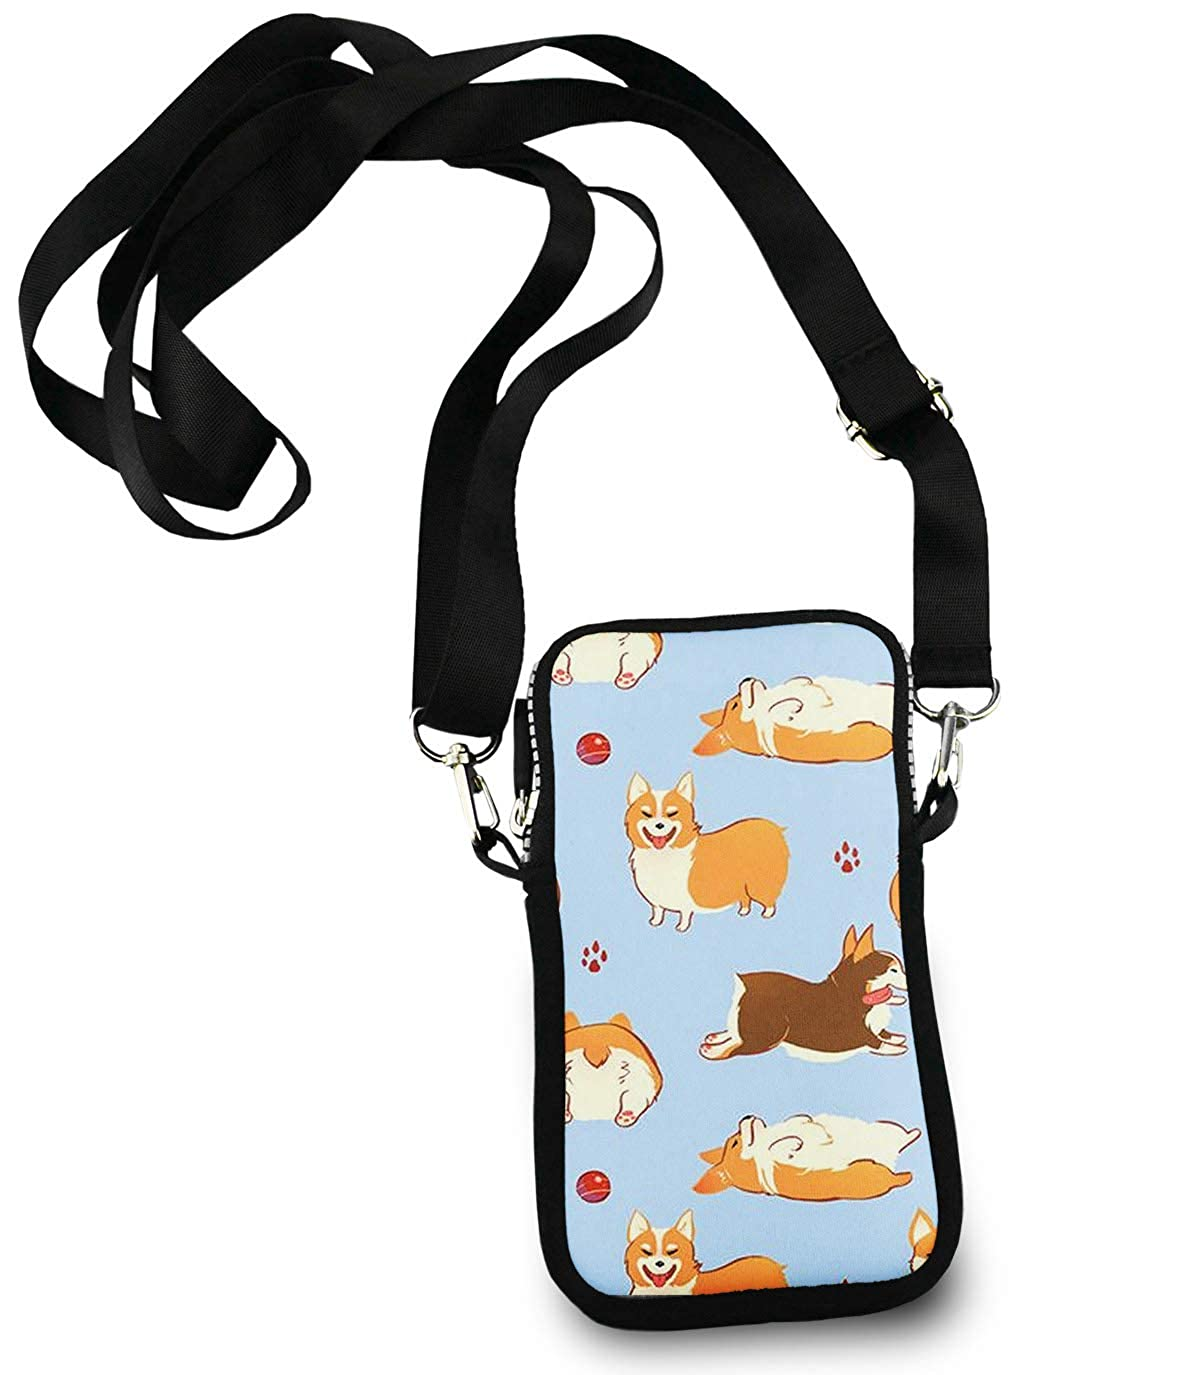 Roomy Pockets Series funny corgi dogs Small Crossbody Bag Cell Phone Purse Wallet For Women Girls